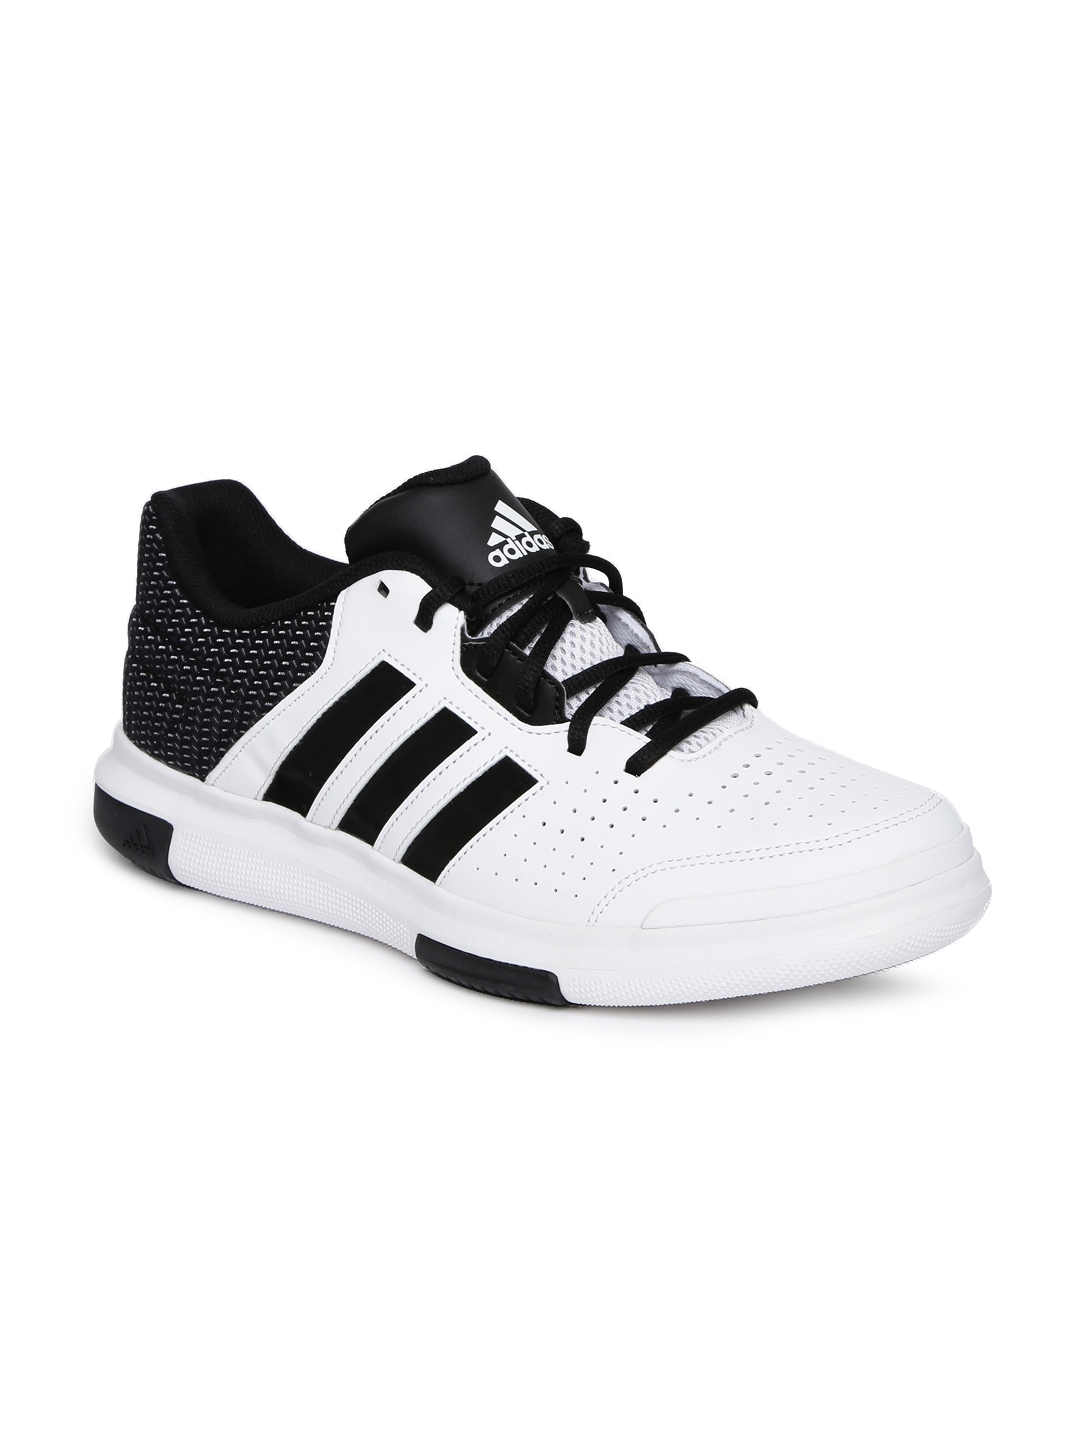 adidas basketball shoes white. adidas men white future g basketball shoes 2